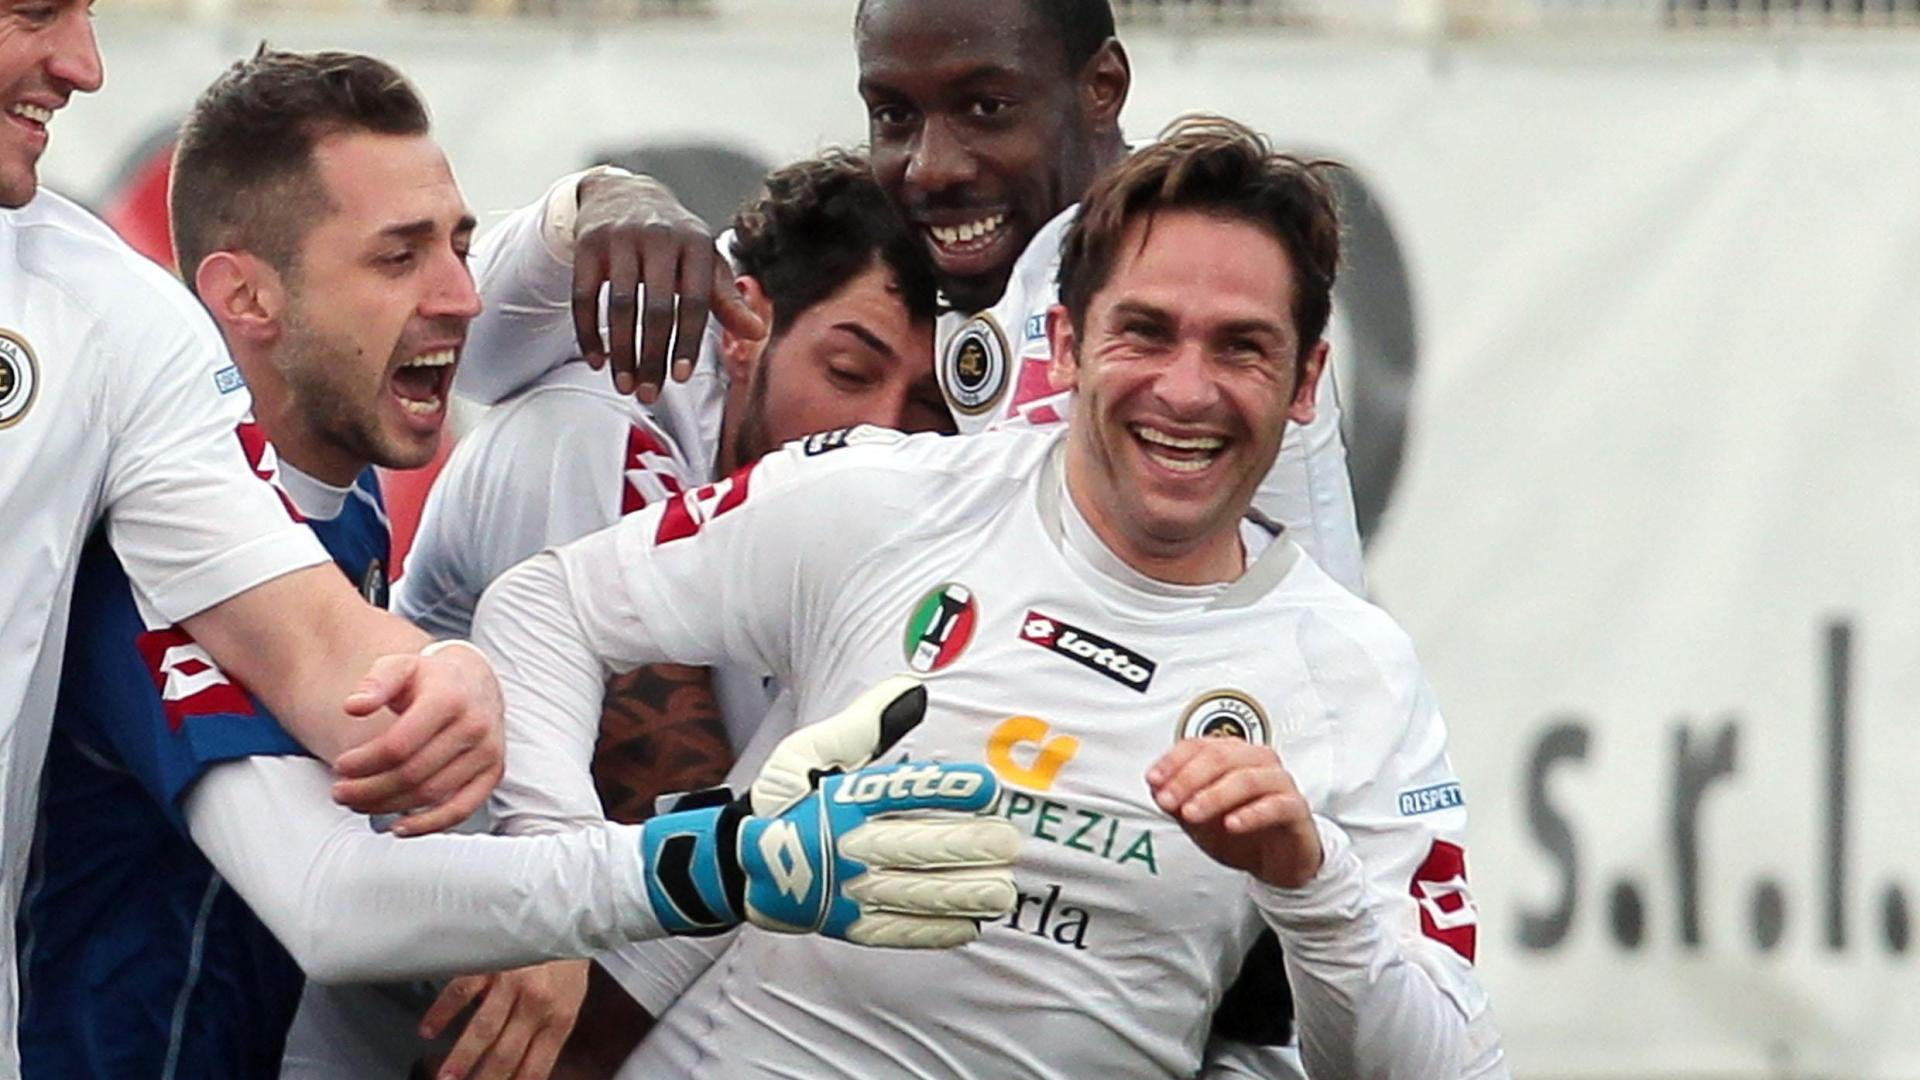 2012/2013 – Back to Serie B